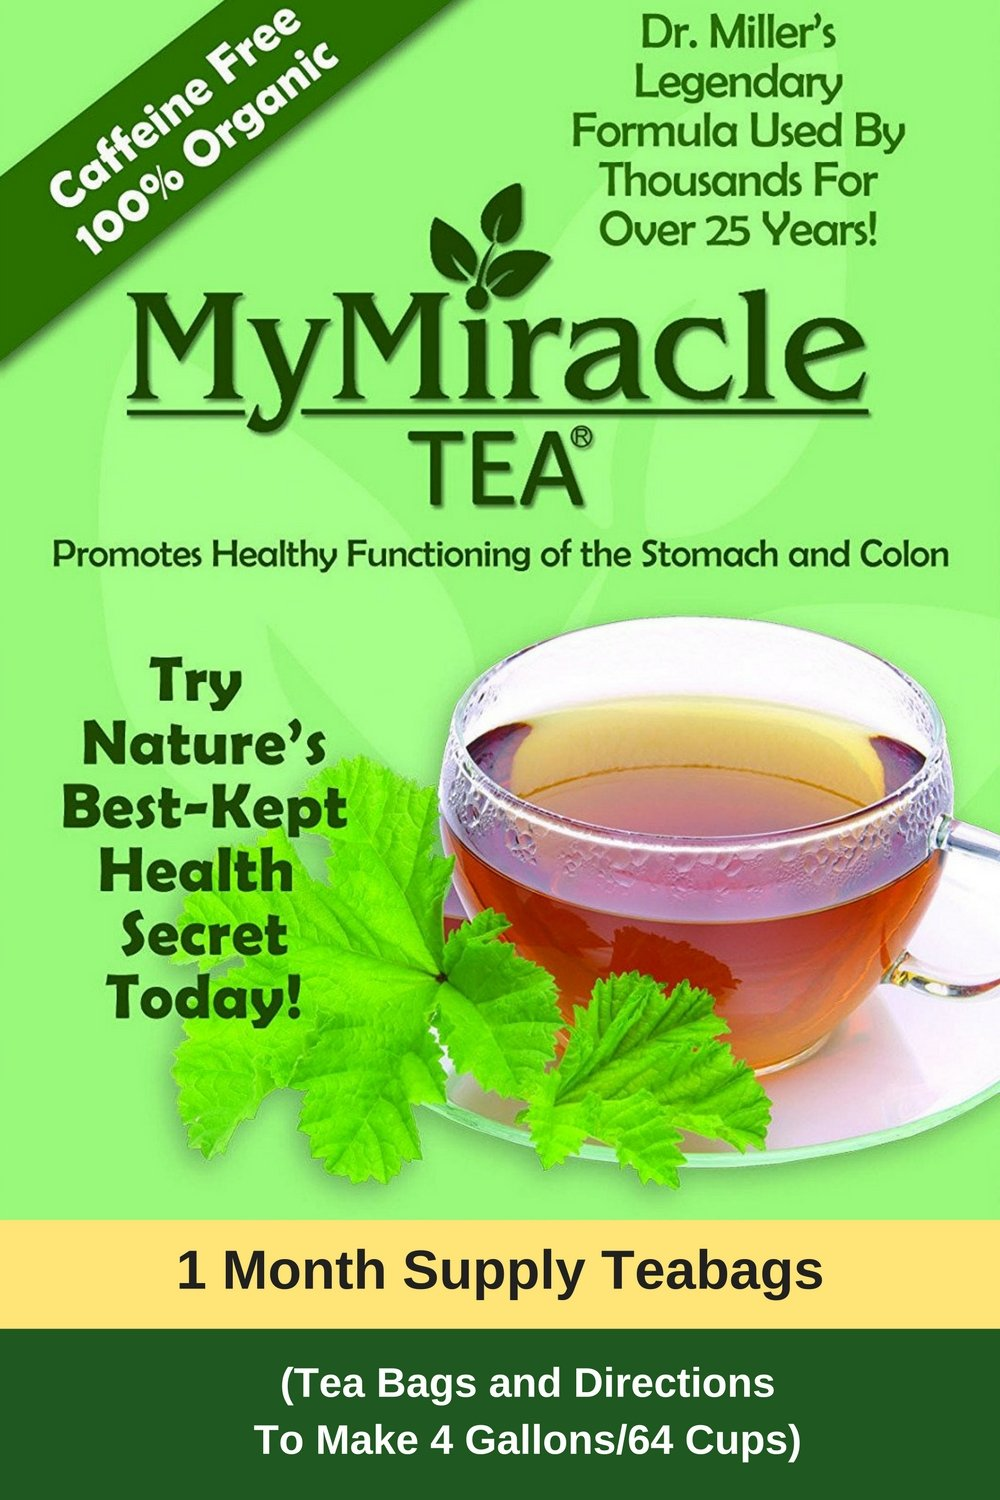 Dr. Miller's Holy Tea   My Miracle Tea Constipation Relief and Detox Tea (1 Month Supply Teabags)